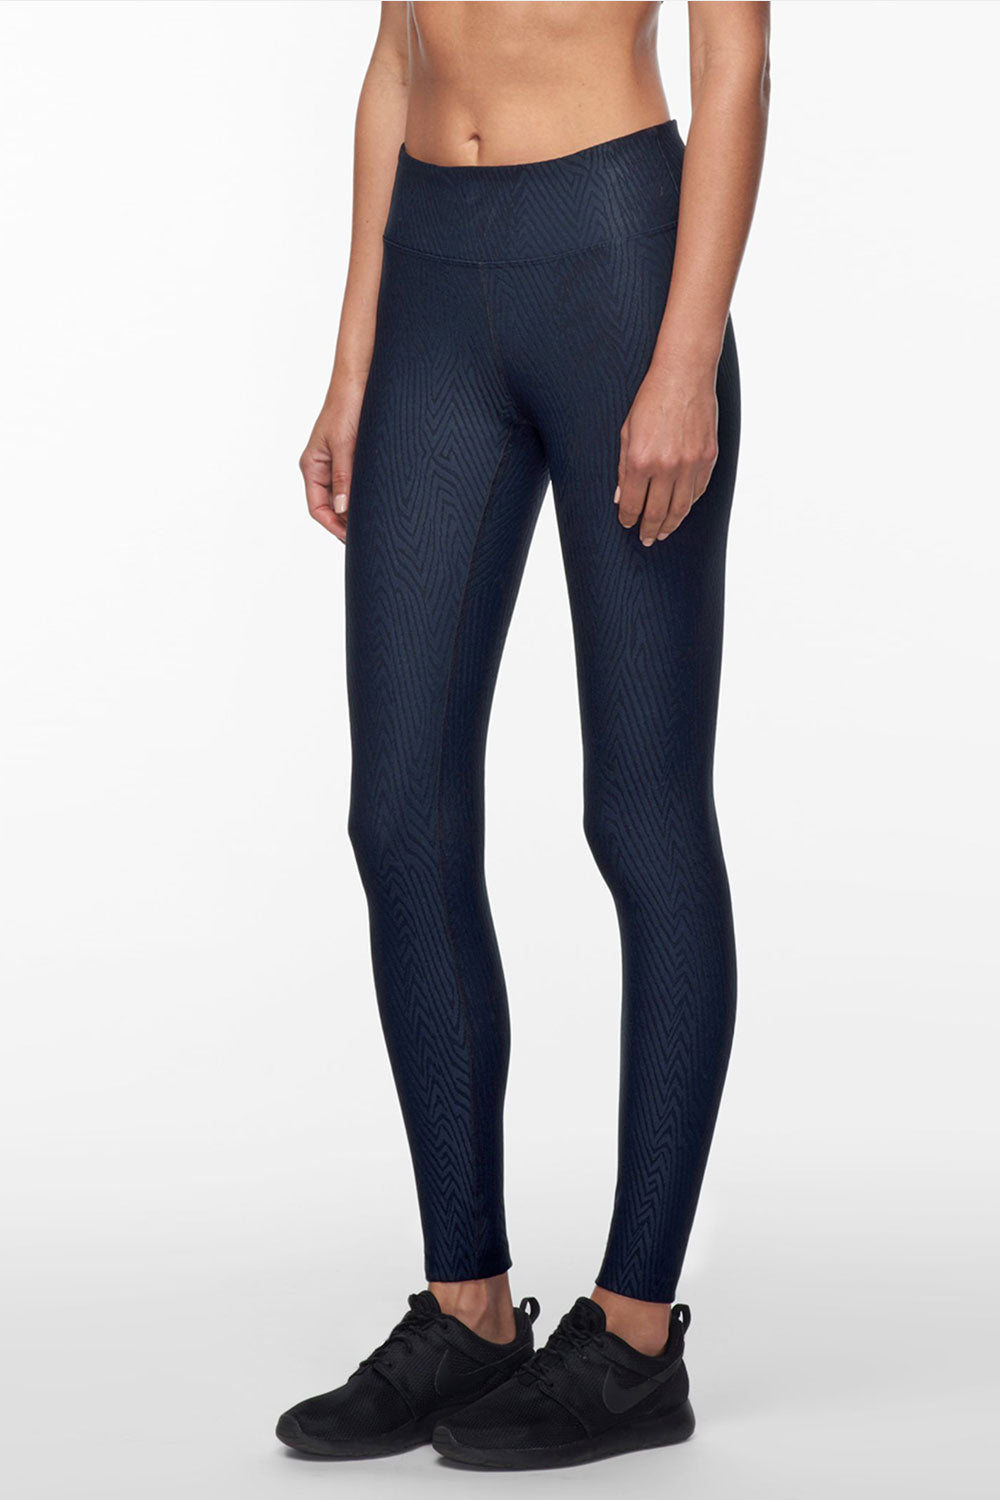 Koral Drive Legging - Midnight - Sculptique